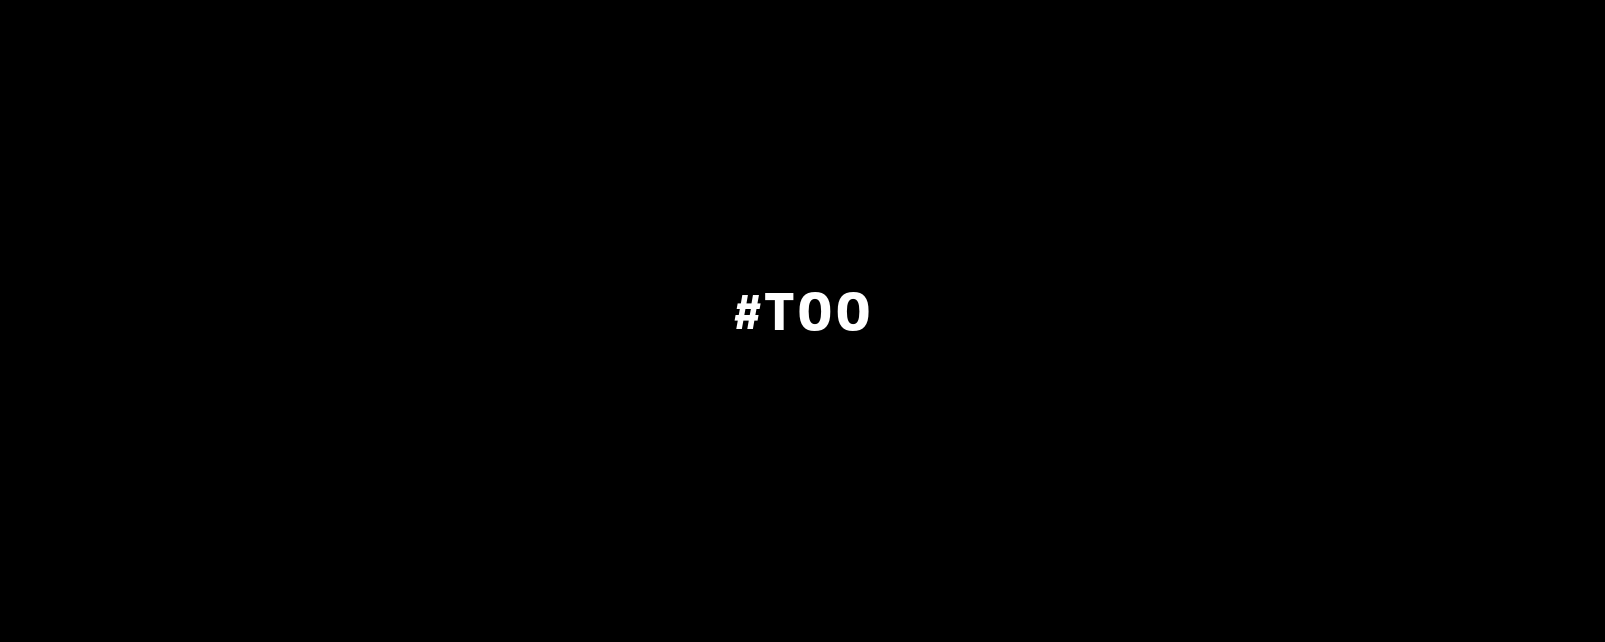 Too-Webpage-Cover